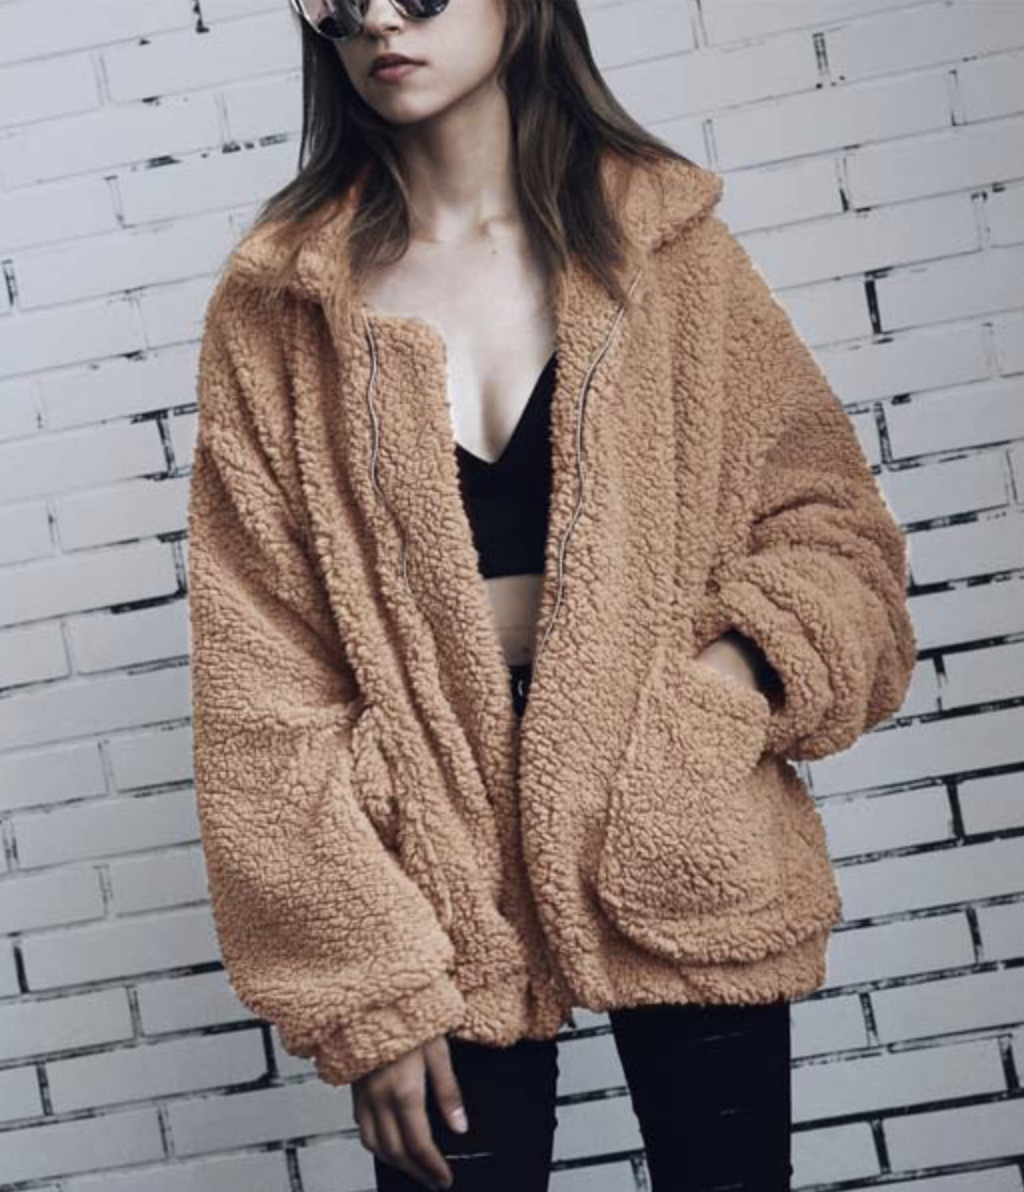 Model in a zippered camel colored faux shearling jacket